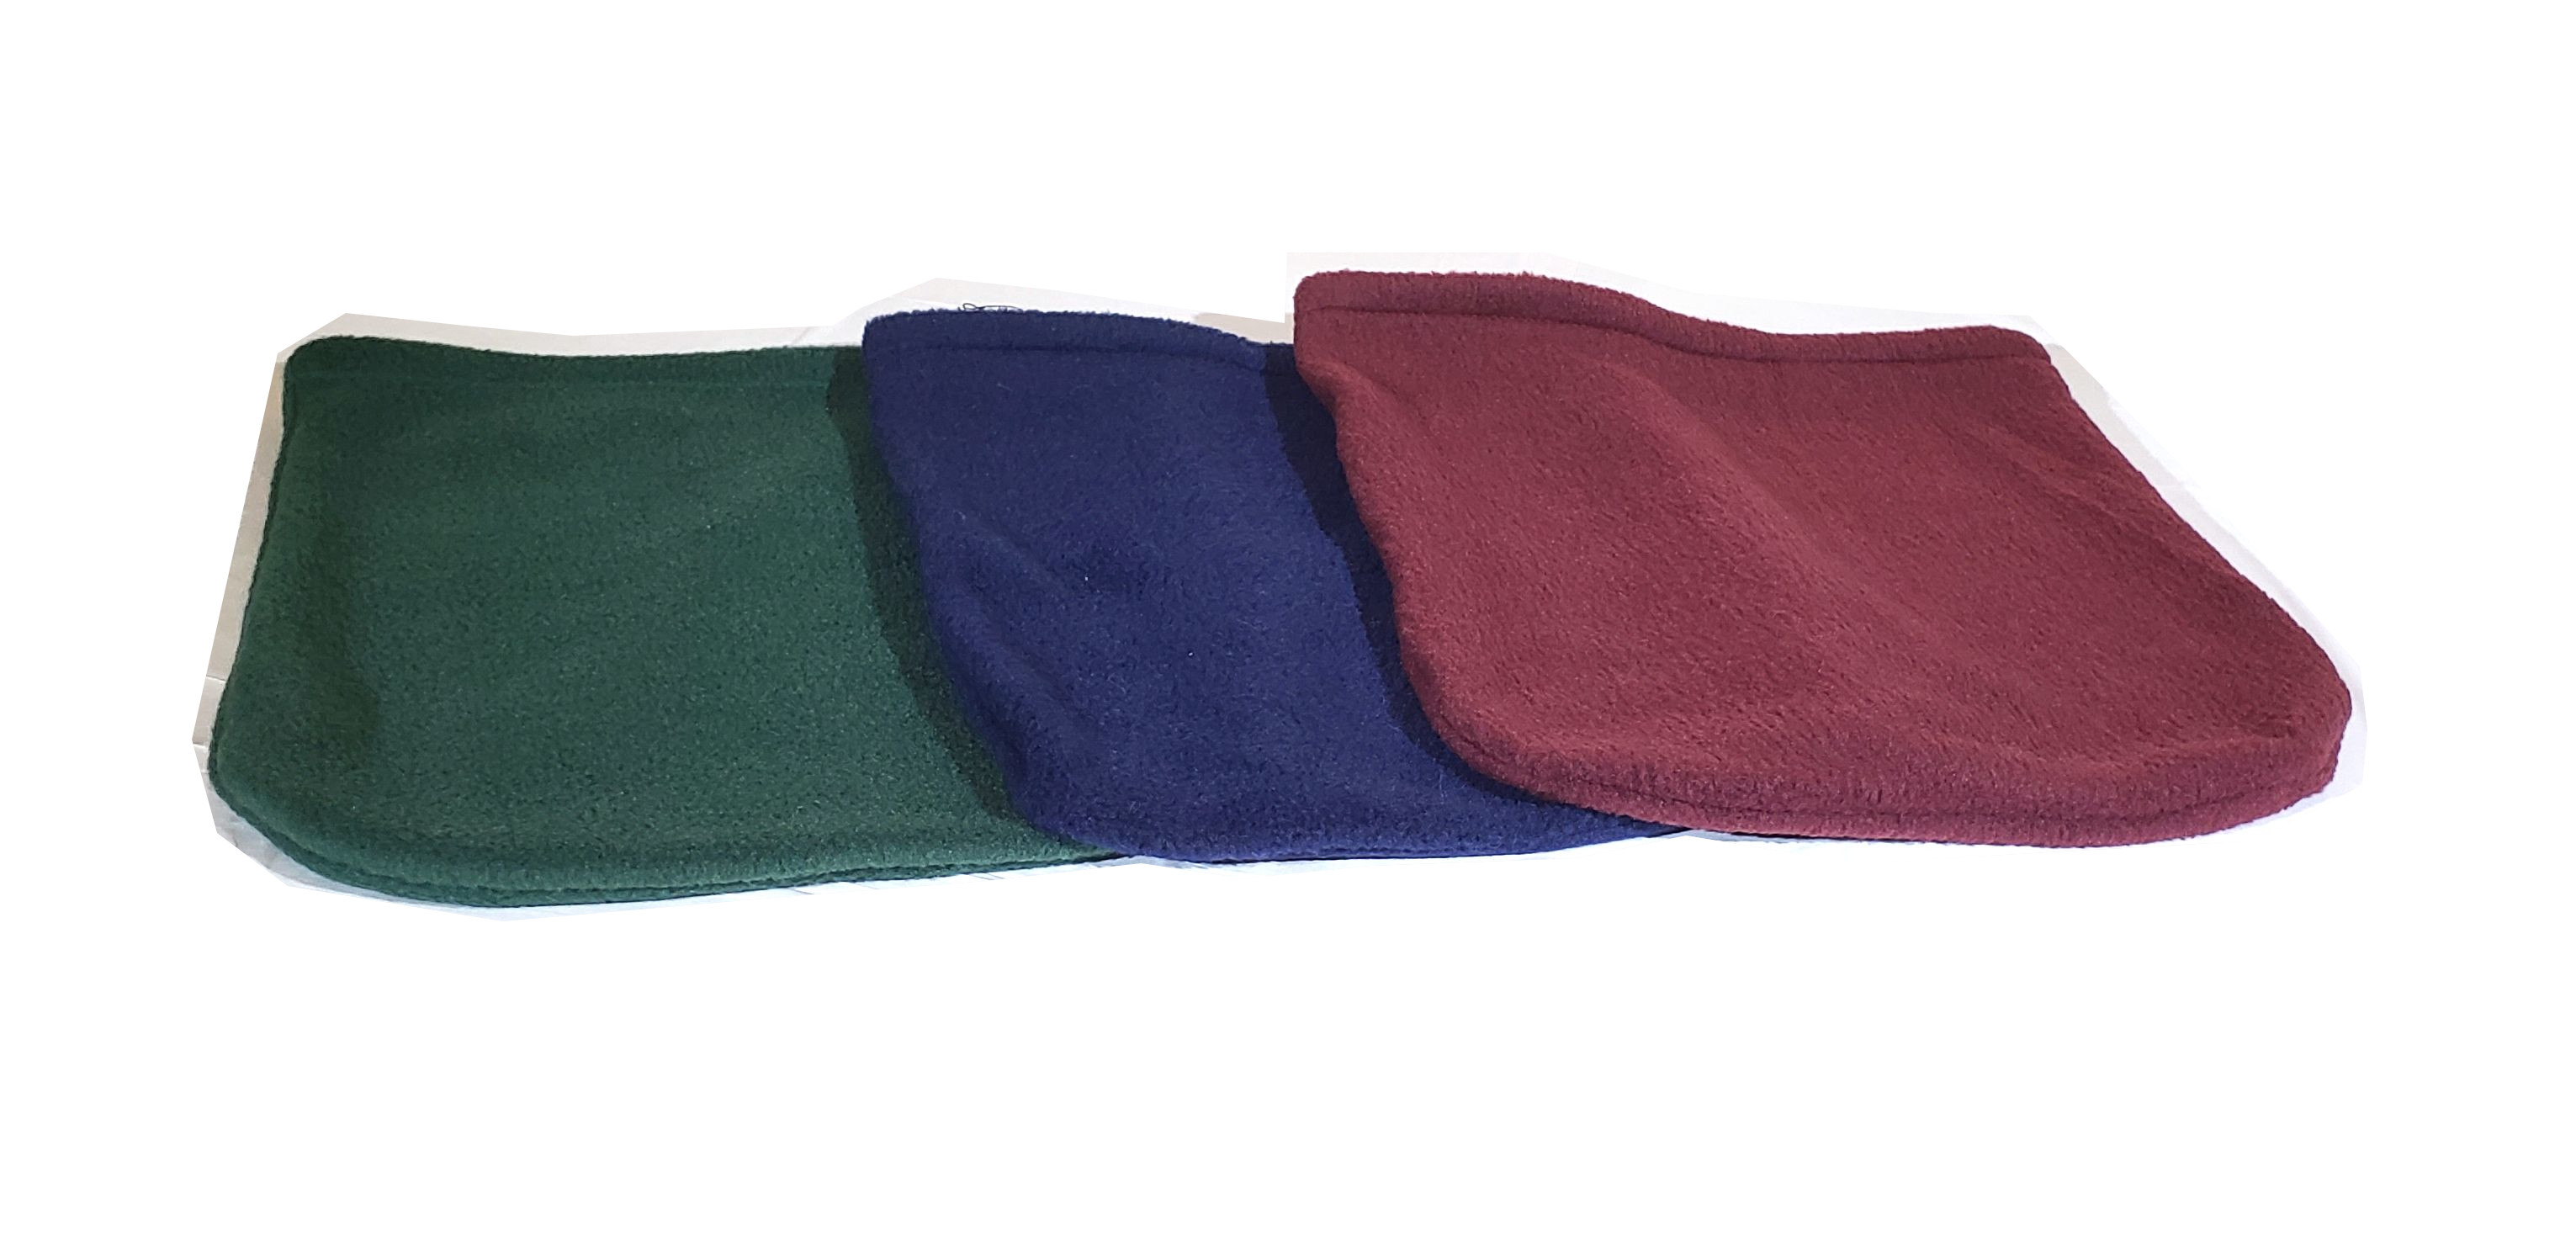 Image showing the 3 different color handicapped pet drag bags that butters brand offers